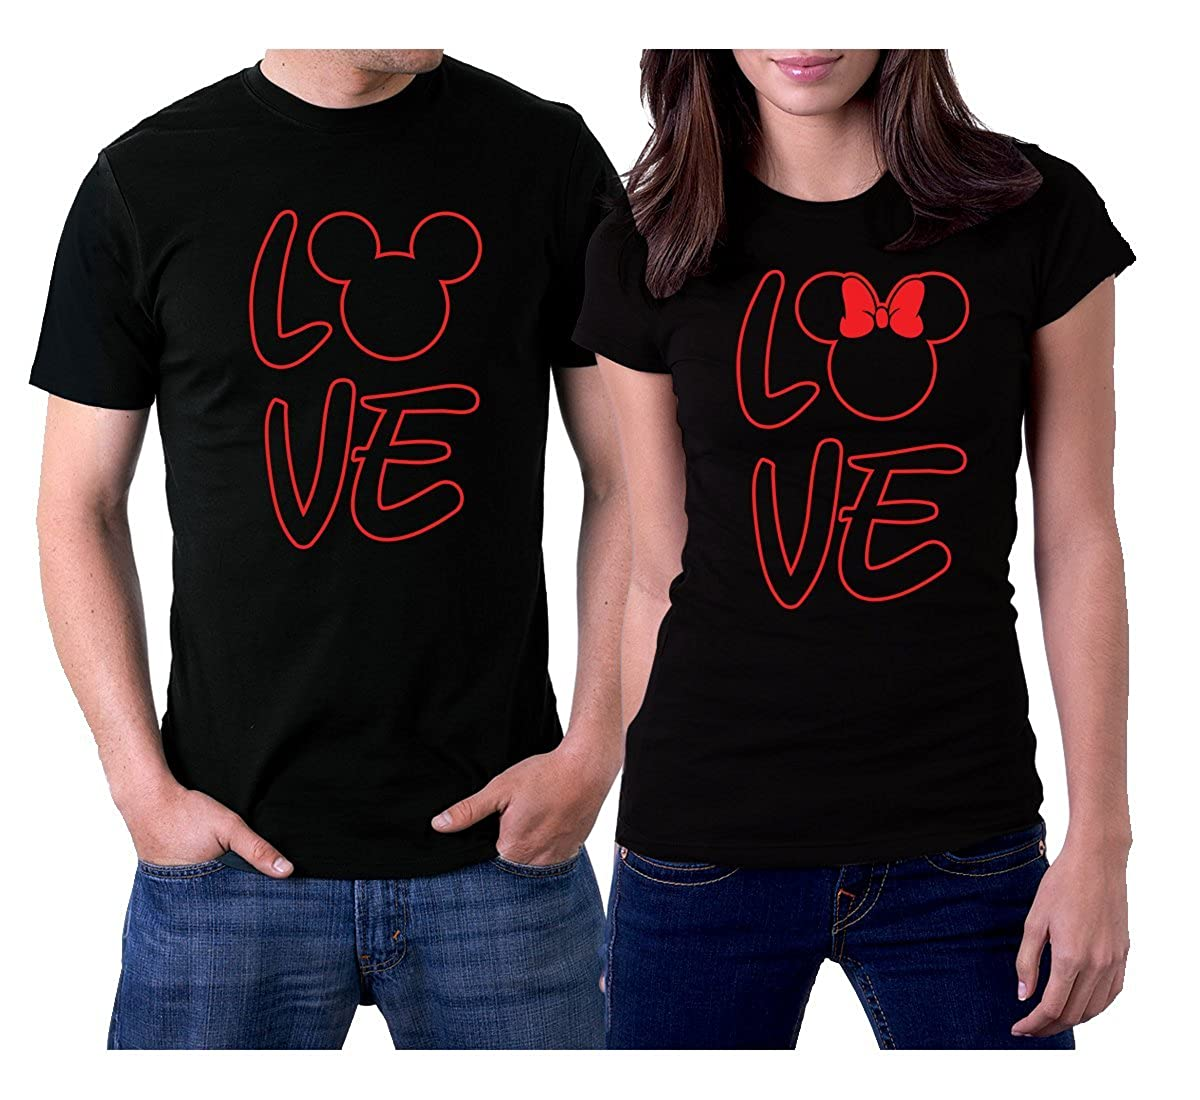 2127d0b234 Amazon.com: picontshirt Love MM Black Couple T-Shirts: Clothing